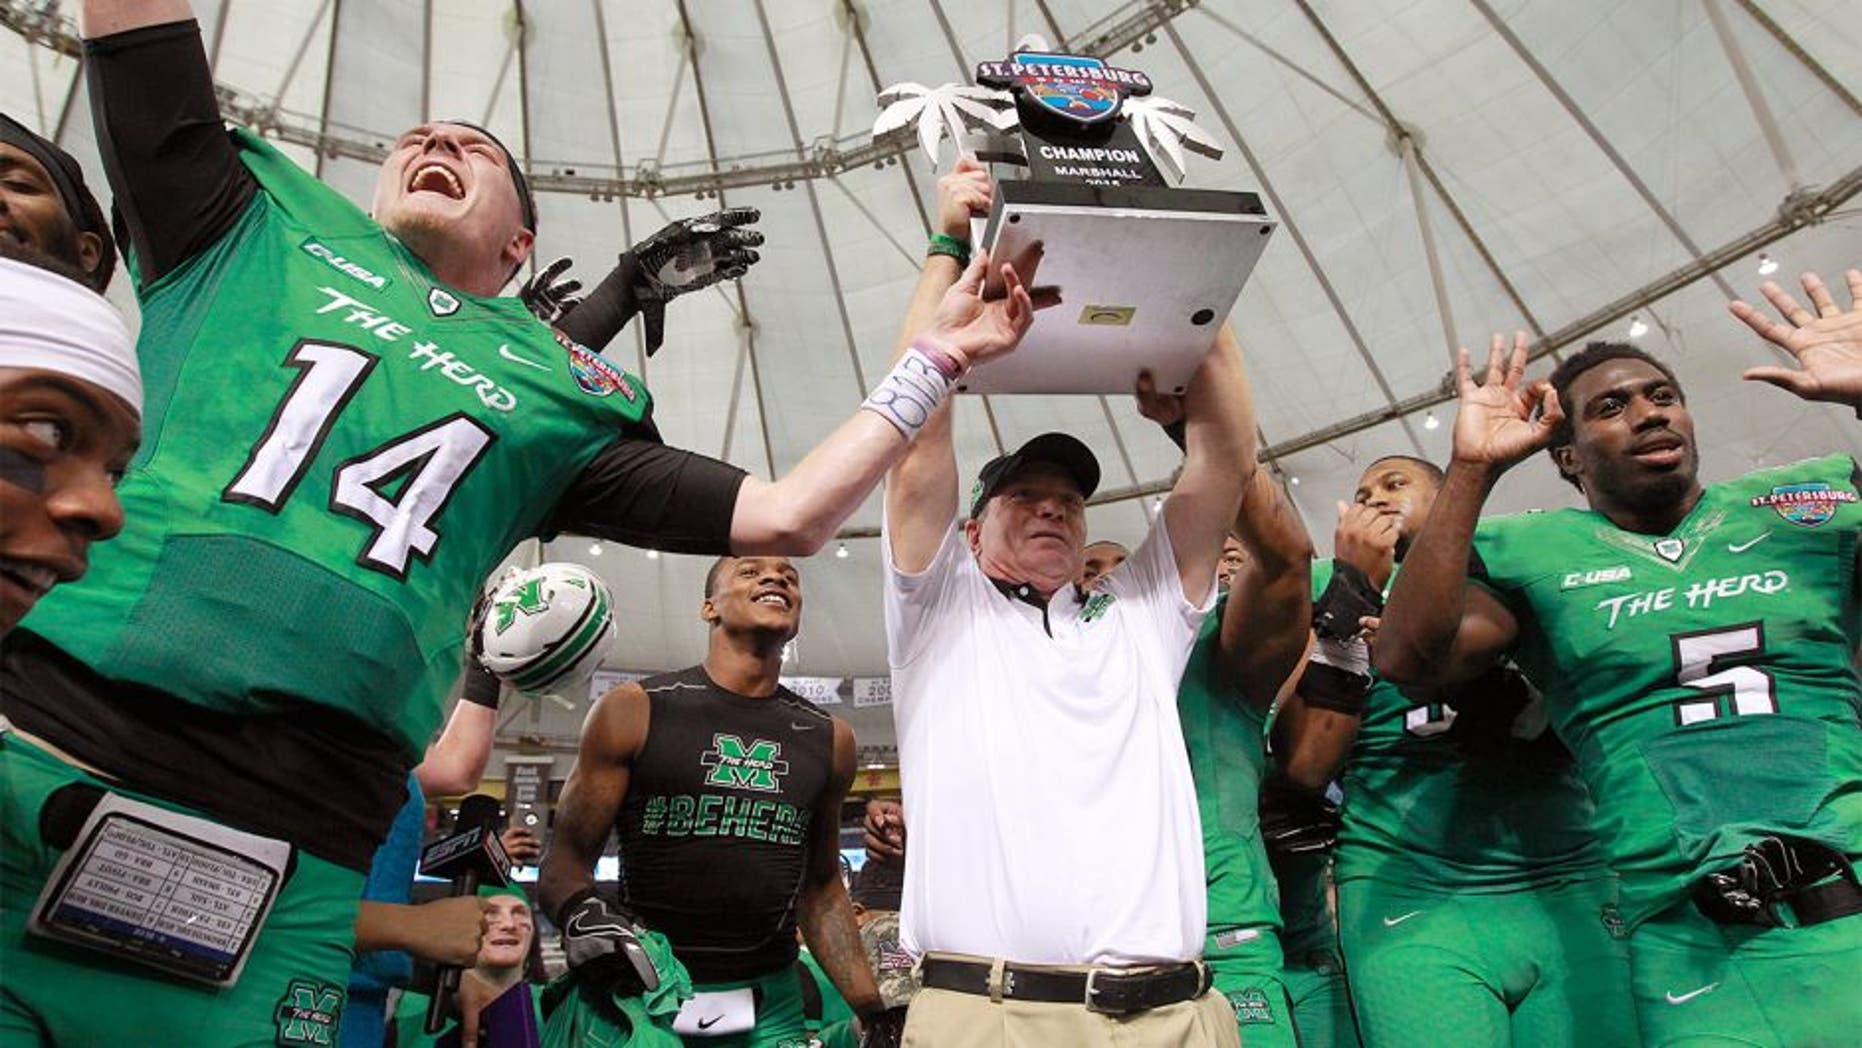 Dec 26, 2015; St. Petersburg, FL, USA; Marshall Thundering Herd head coach Doc Holliday raises the trophy with teammates after they beat the Connecticut Huskies to win the St. Petersburg Bowl at Tropicana Field. Marshall Thundering Herd defeated the Connecticut Huskies 16-10. Mandatory Credit: Kim Klement-USA TODAY Sports